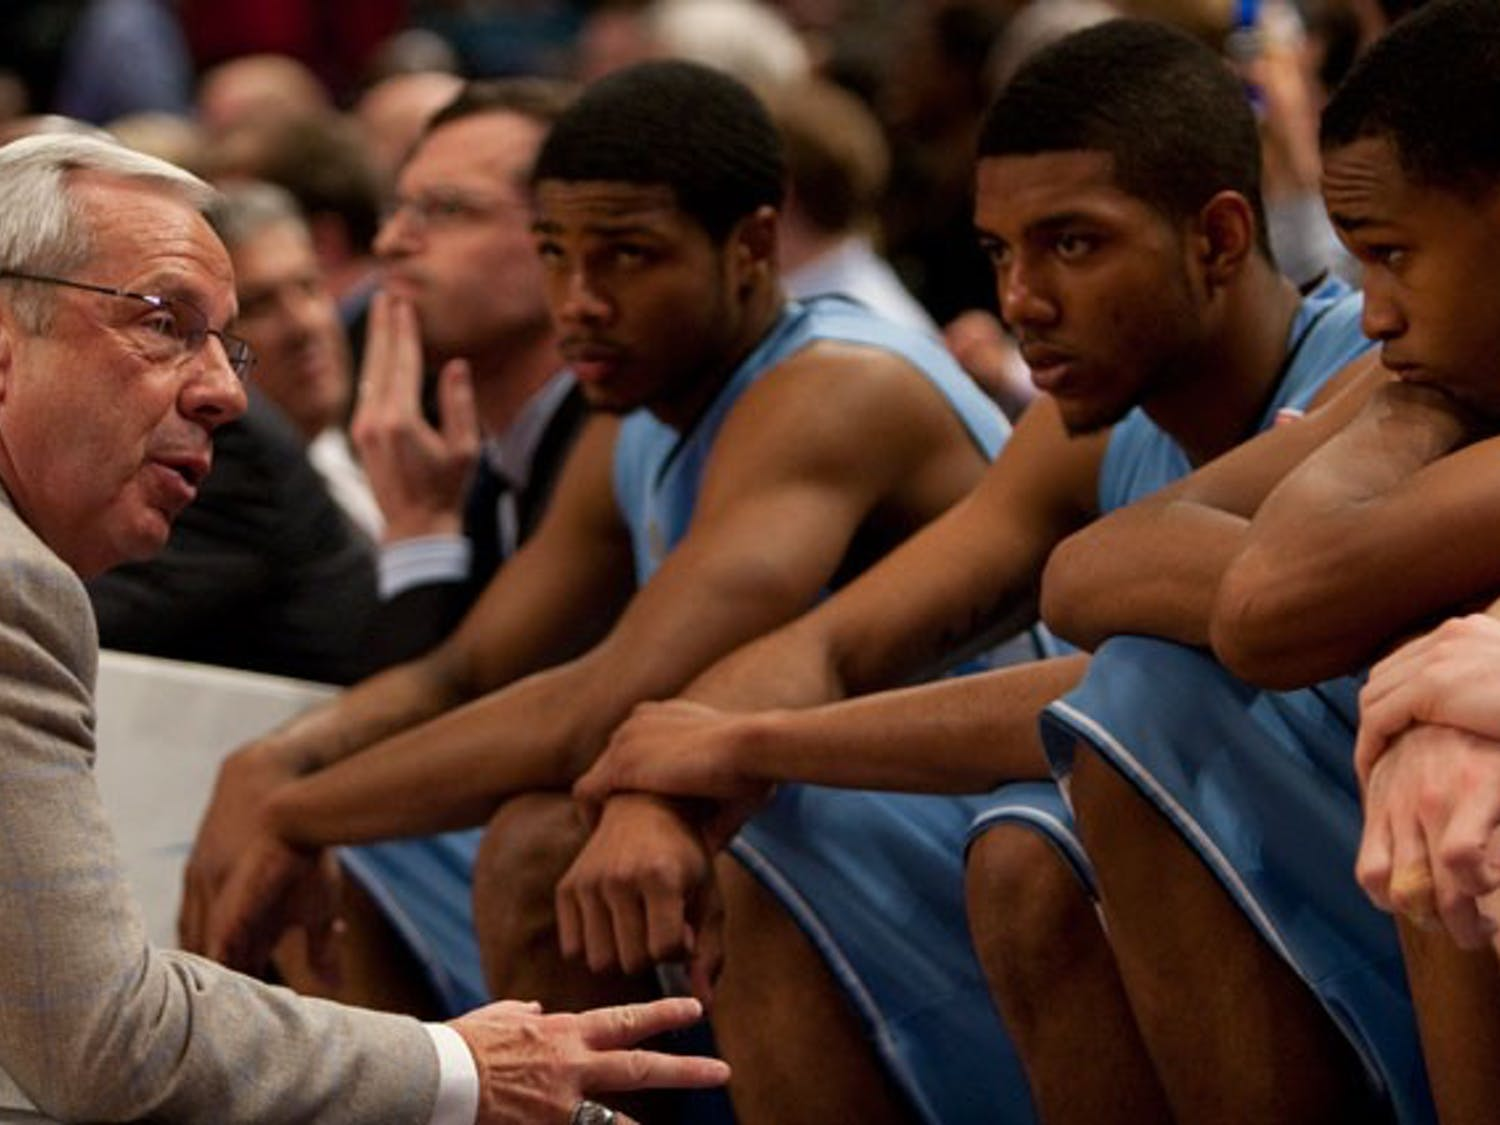 Roy Williams talks with Dexter Strickland, Leslie McDonald and John Henson. DTH/Katherine Vance